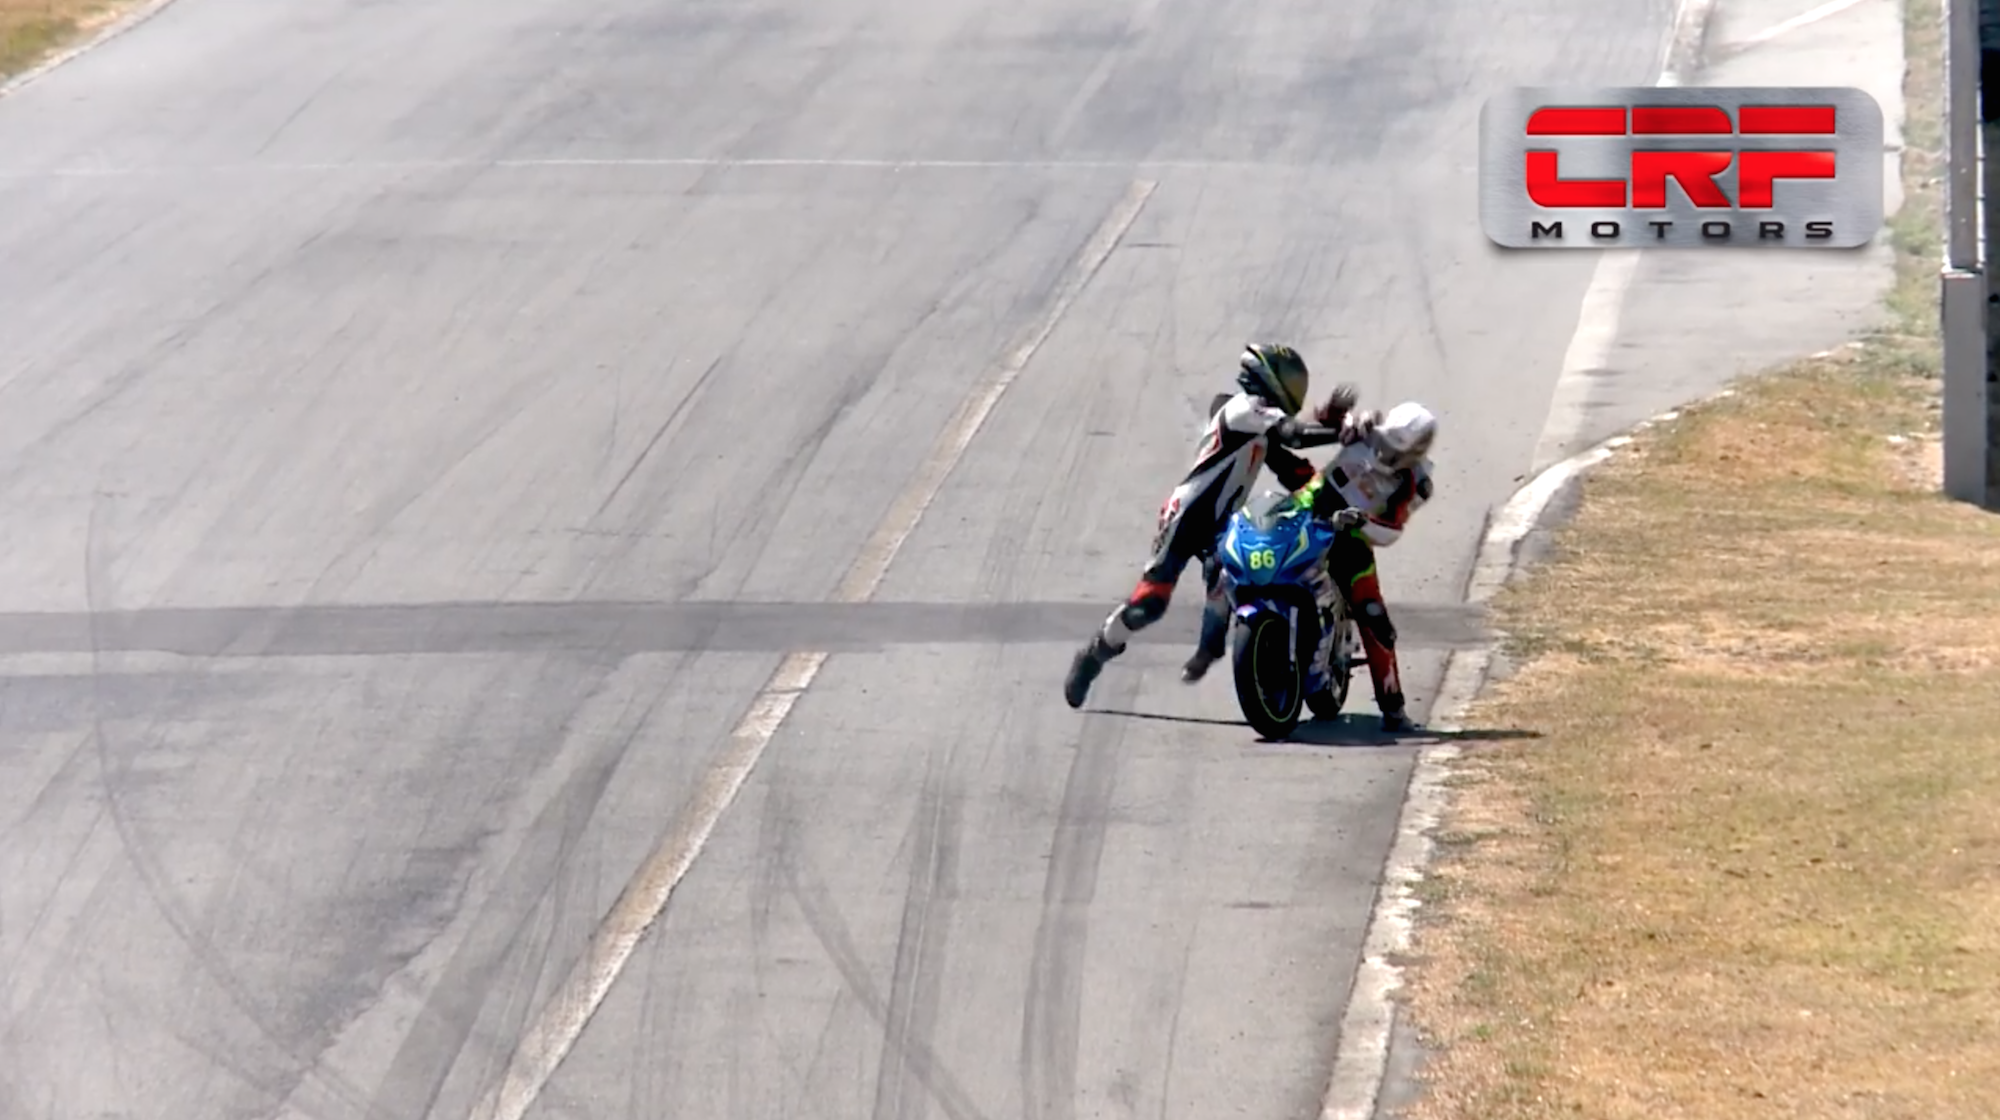 Costa Rica motorcycle fight video: Racers banned two years